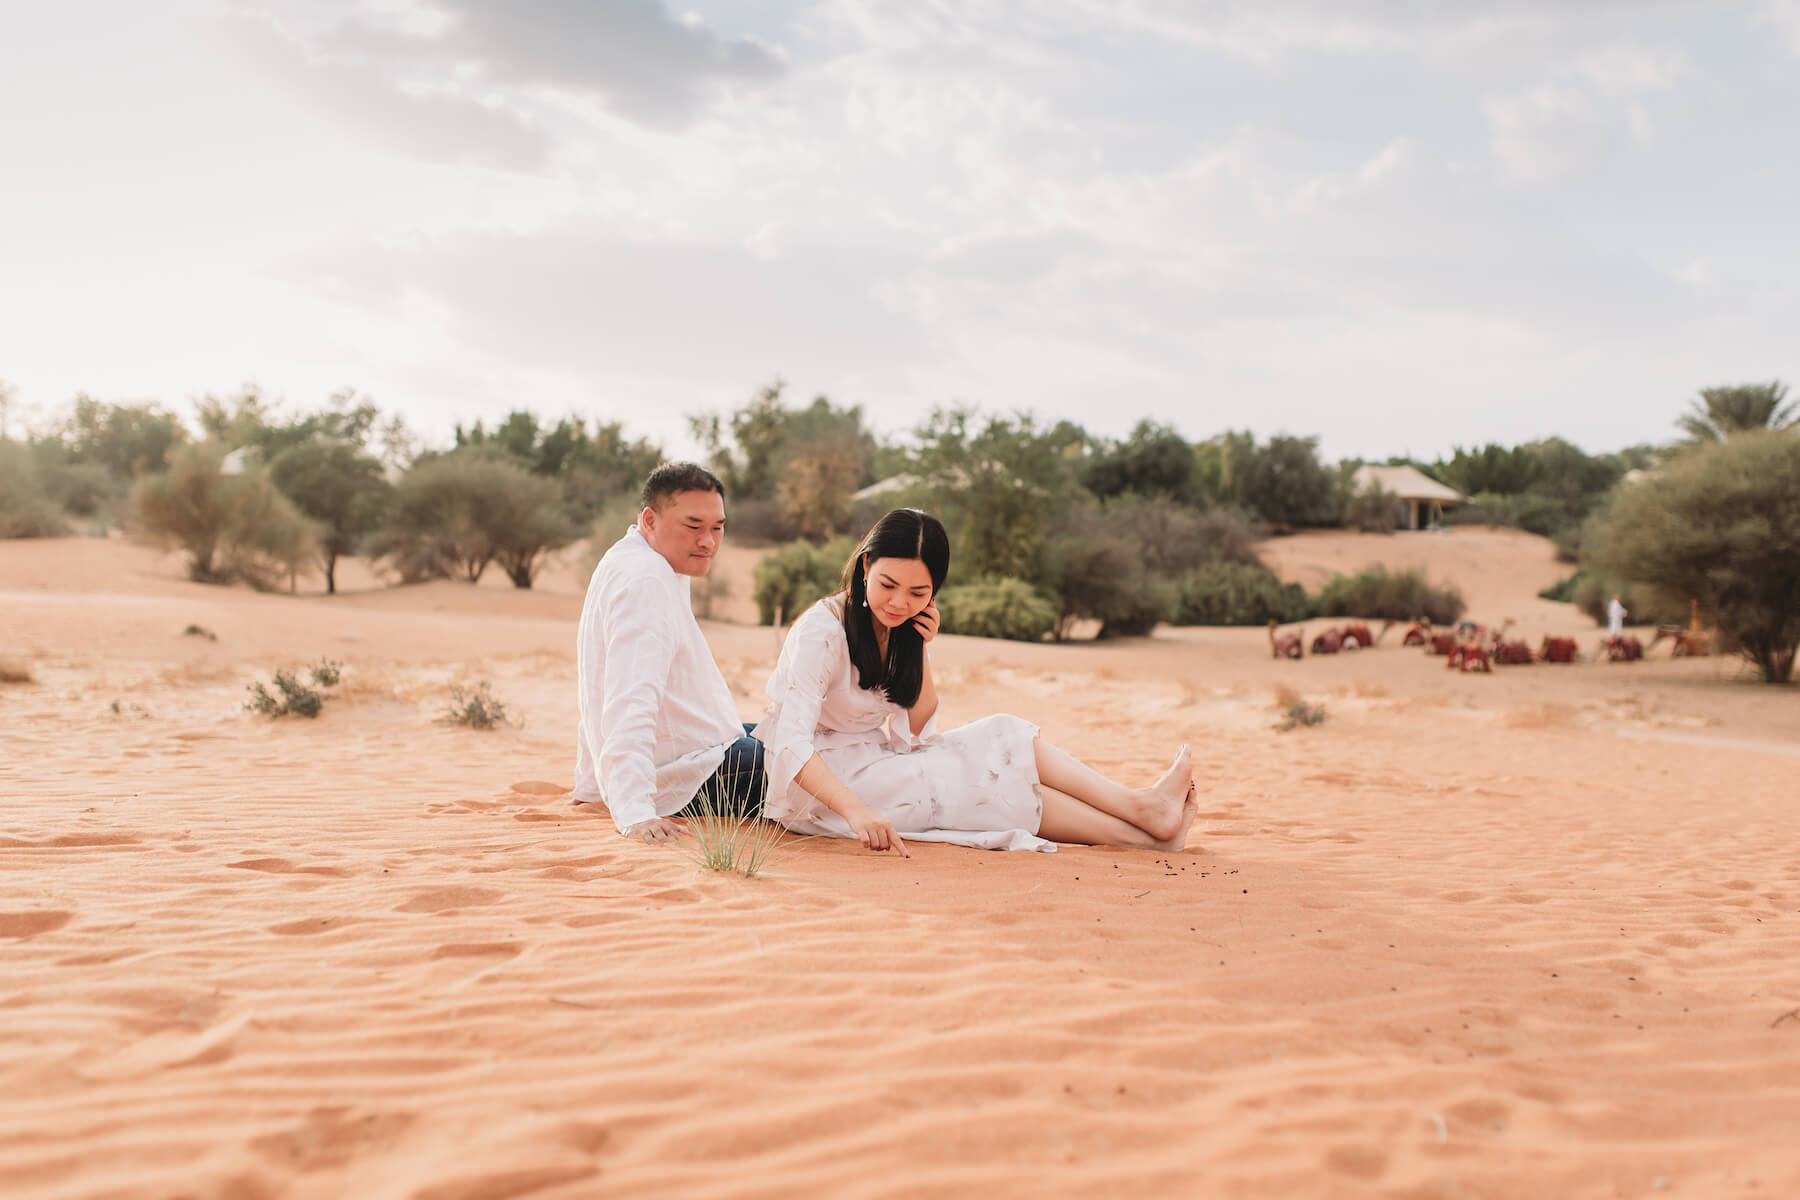 Two people each sitting in the Dubai desert in Dubai, United Arab Emirates